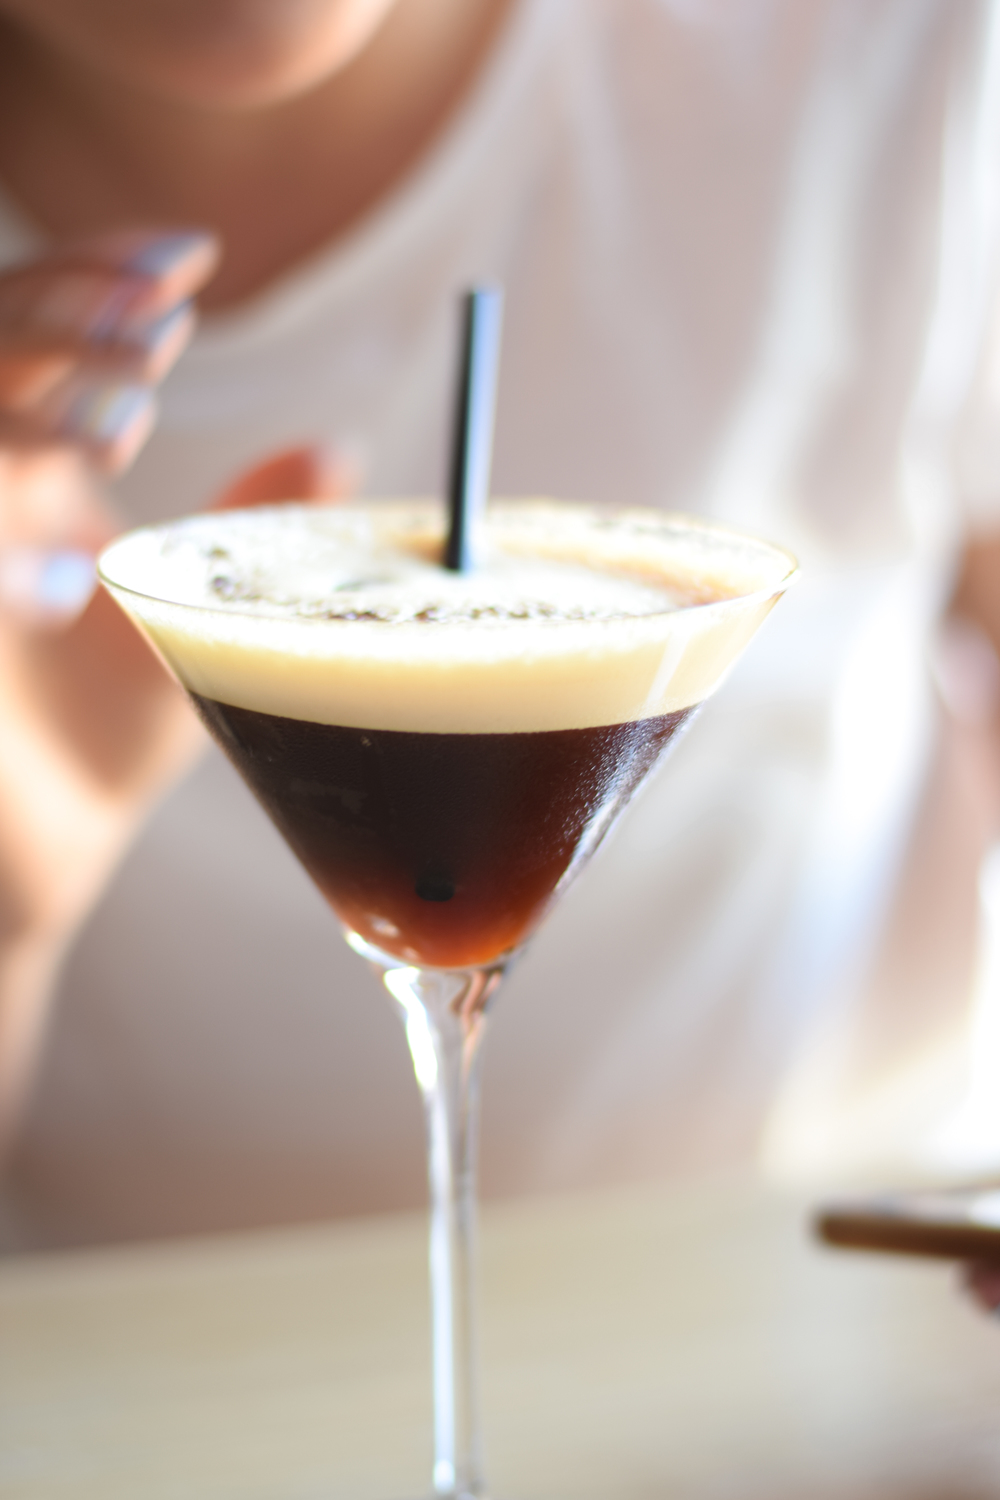 No such thing as too many espresso martinis